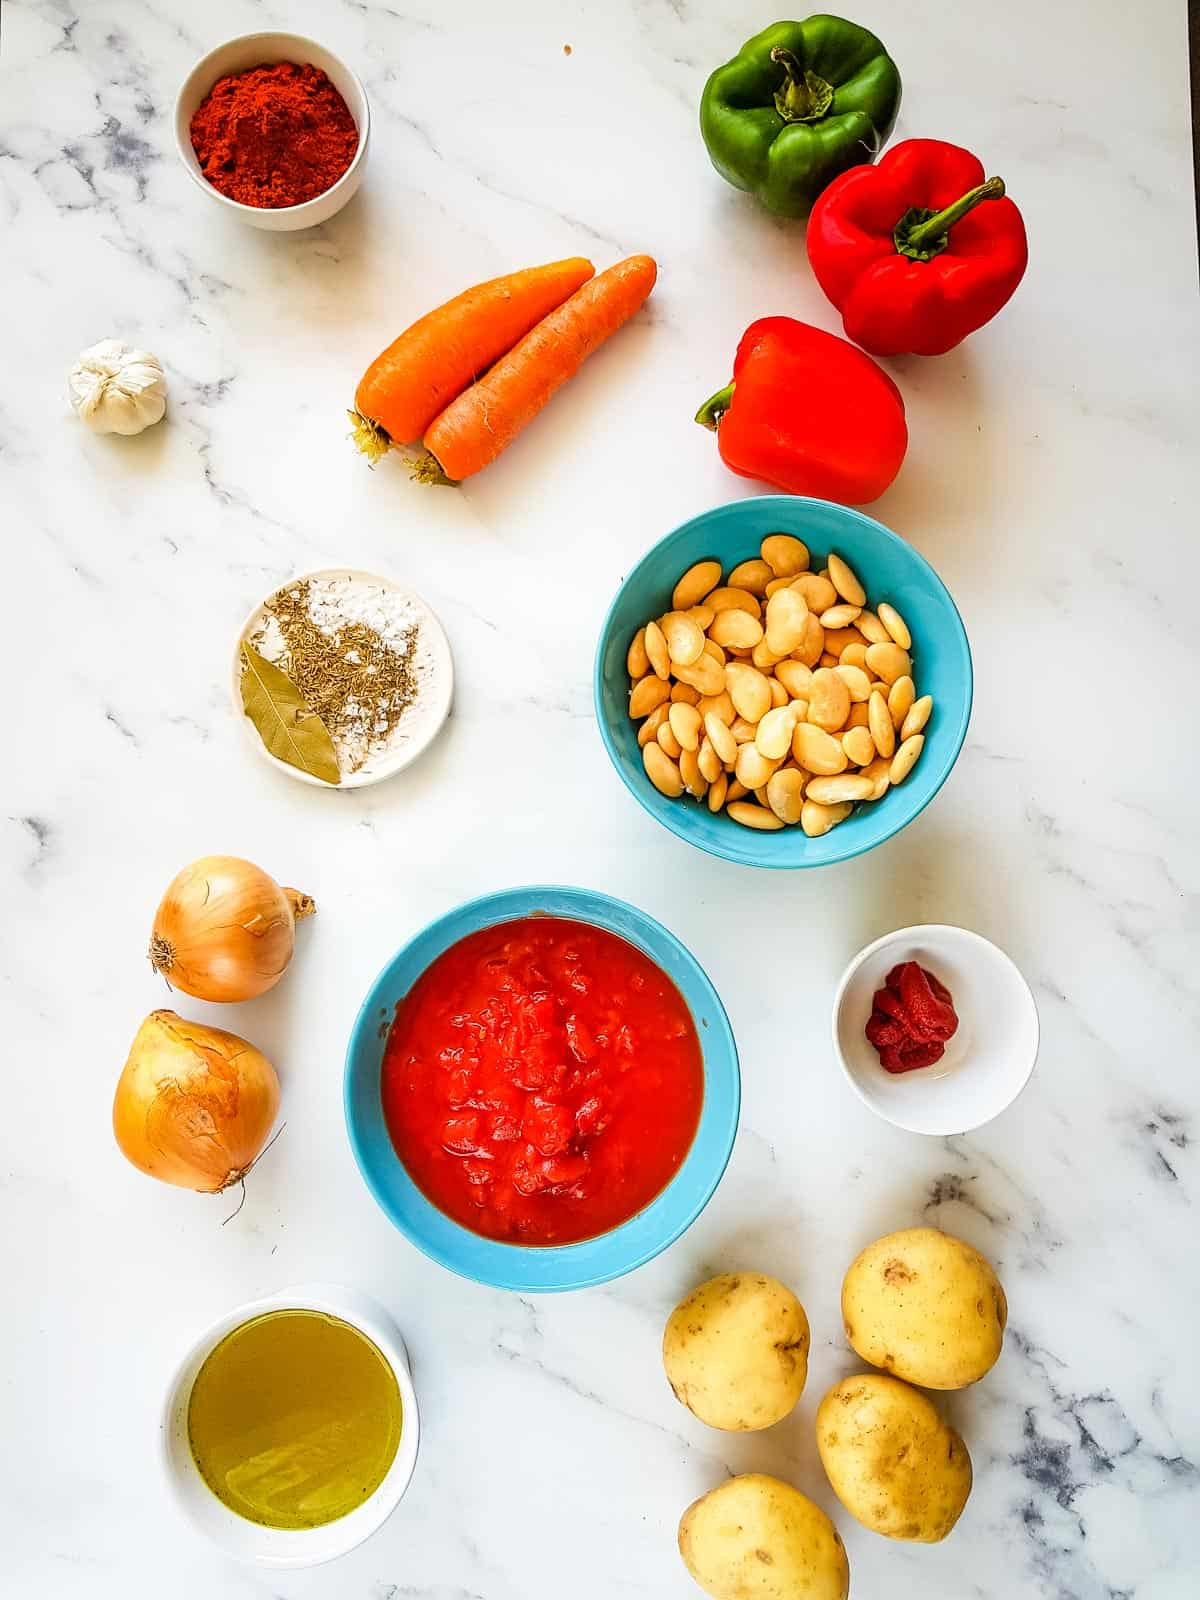 The ingredients for vegetable goulash laid out on a table.